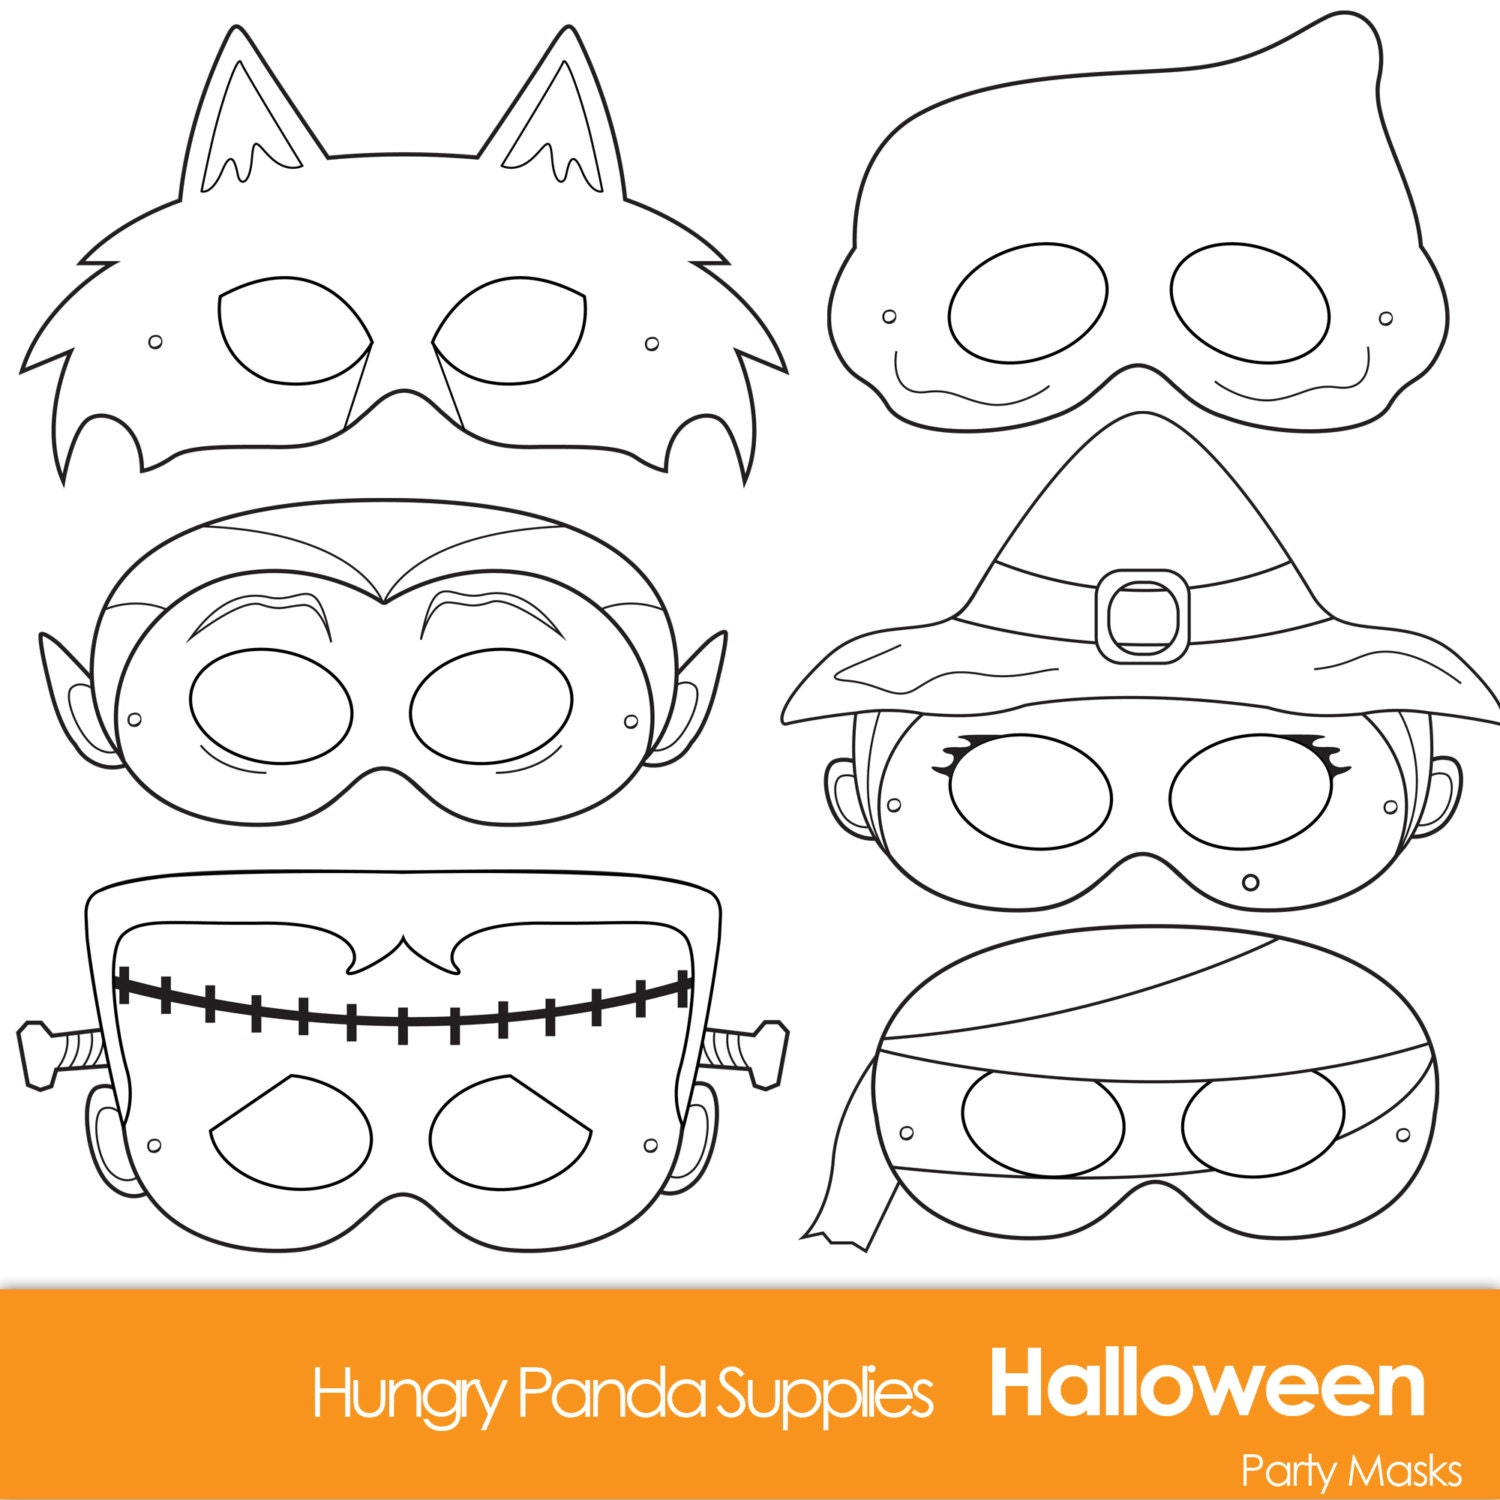 Persnickety image intended for free printable halloween masks